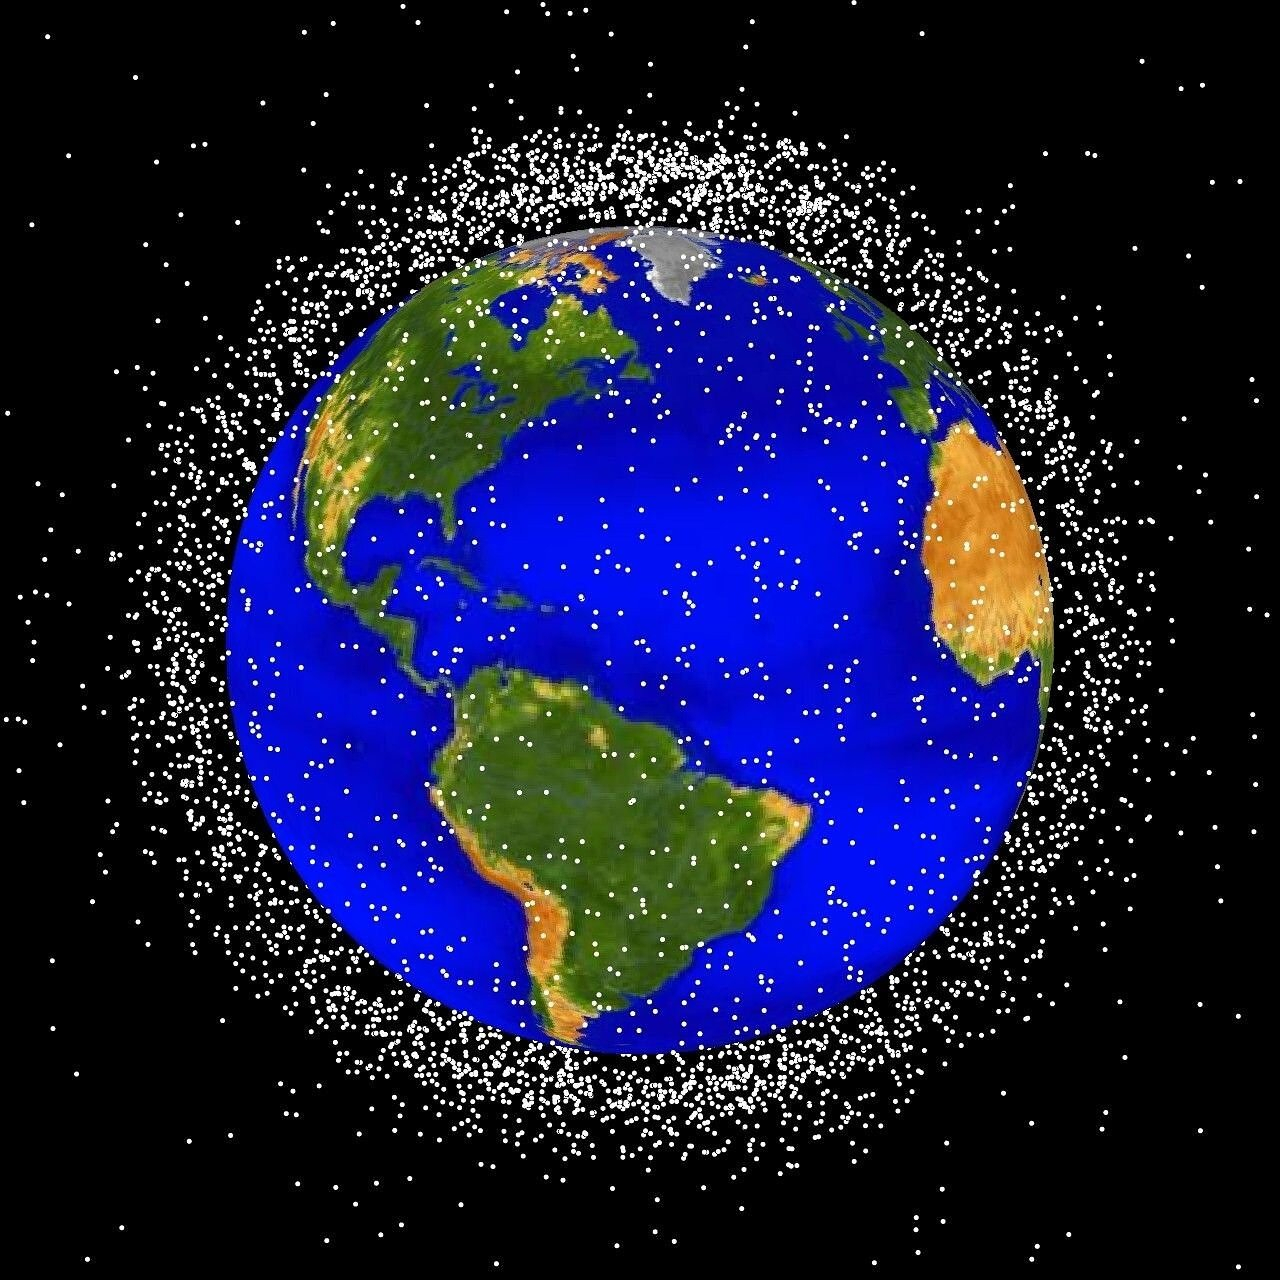 Scientists look to satellites made of wood to reduce 'space junk'